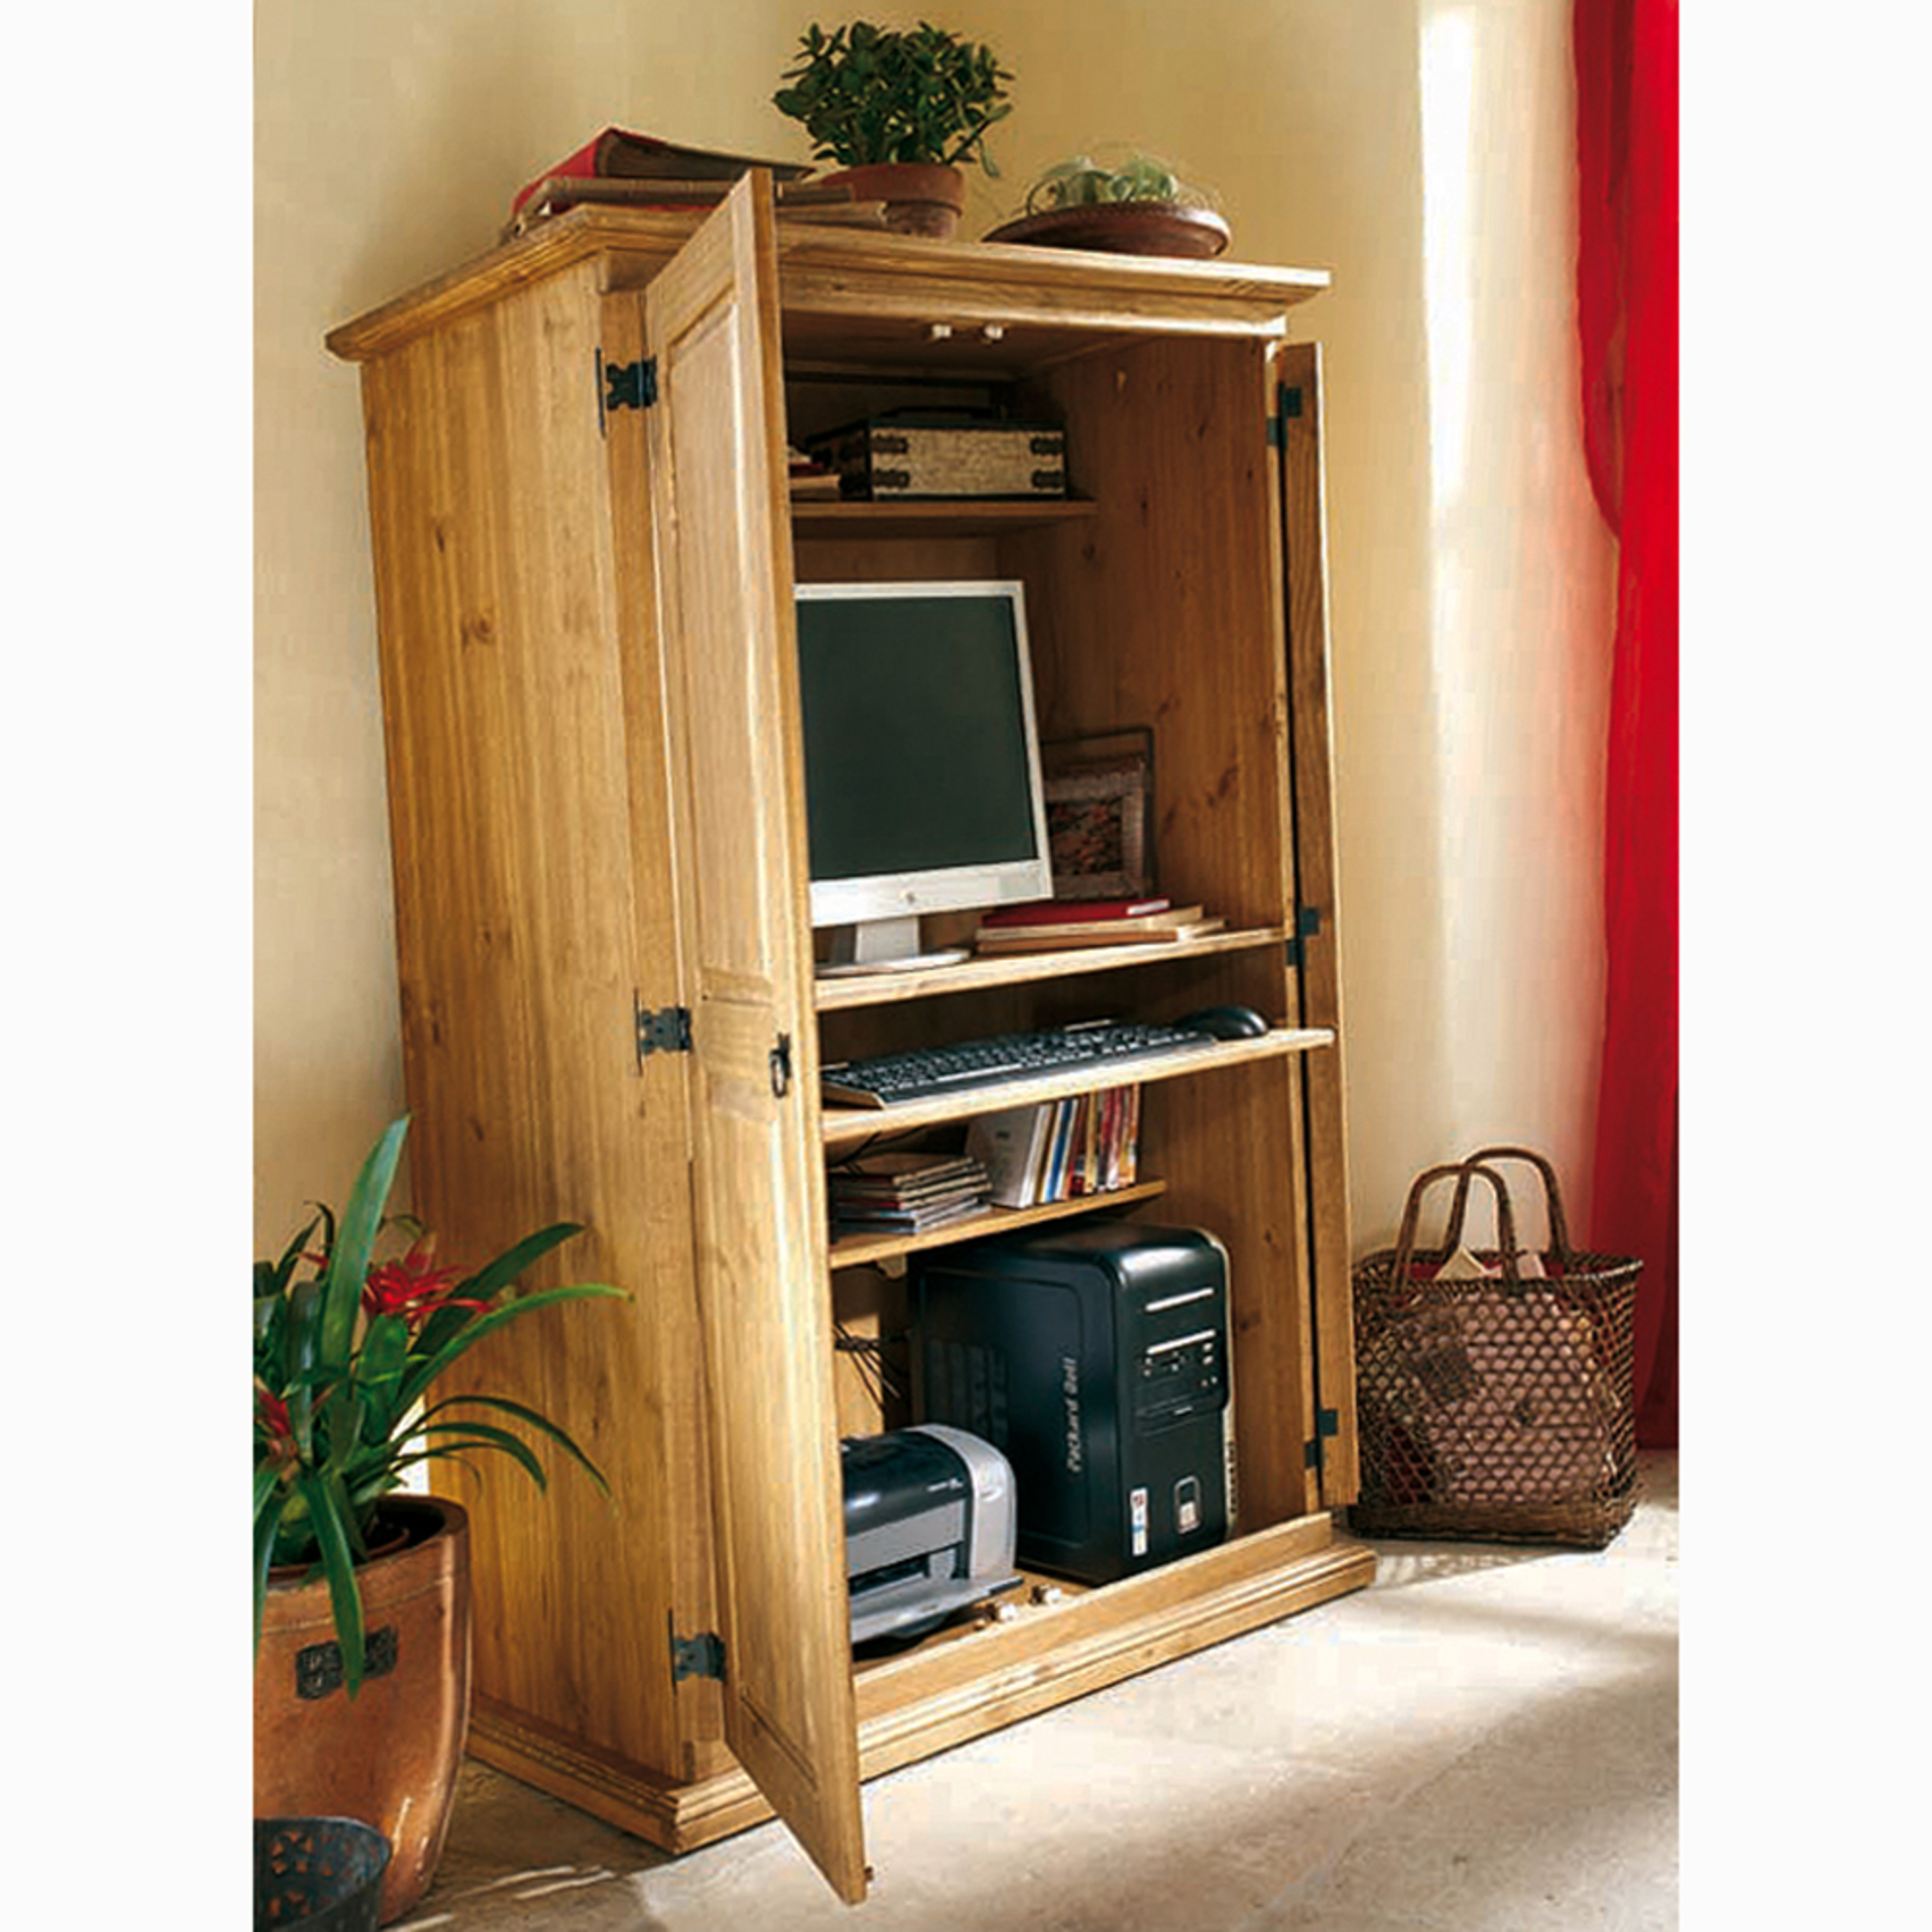 Meuble tv ou armoire micro informatique el patio for Meuble armoire informatique